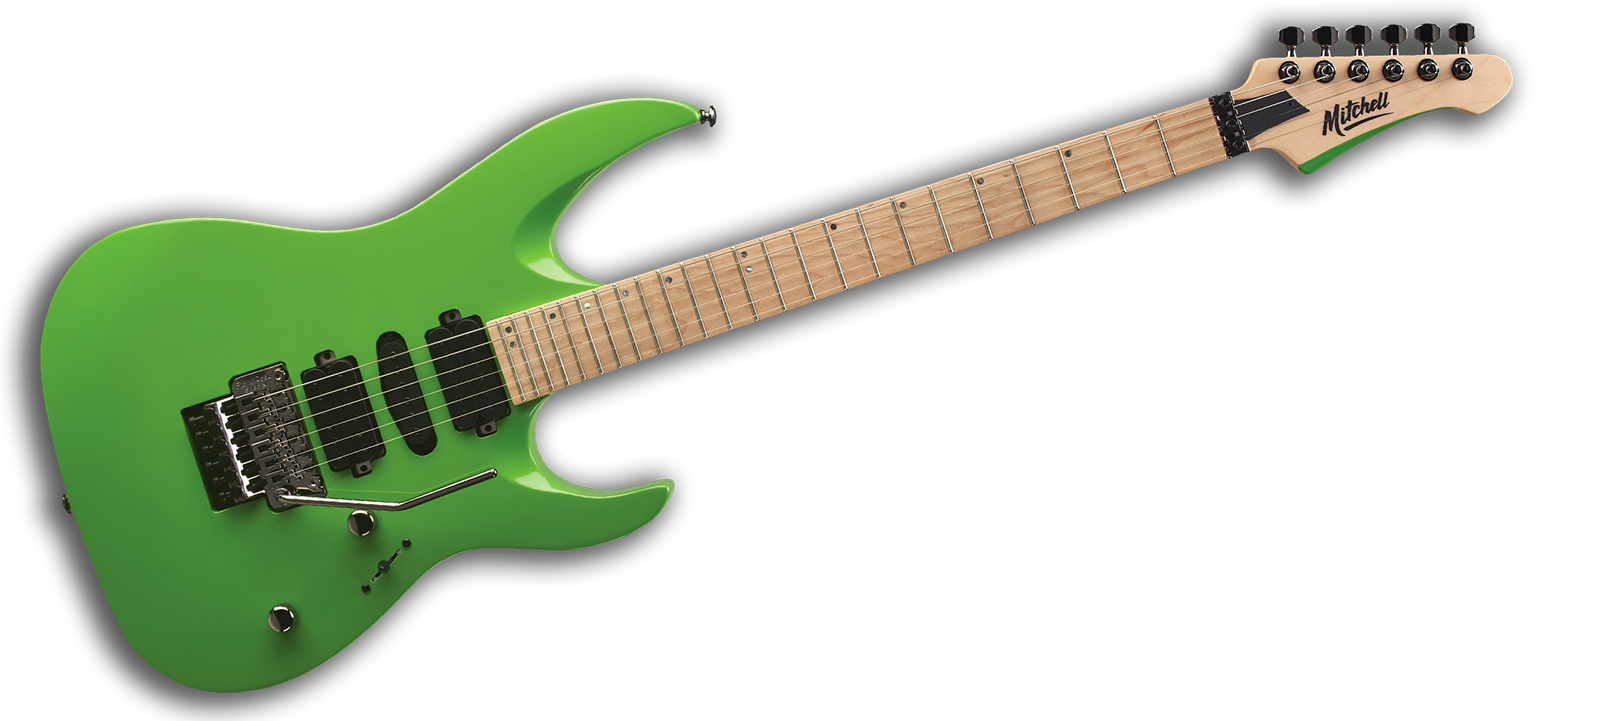 Mitchell HD400 Electric Guitars Lime Green